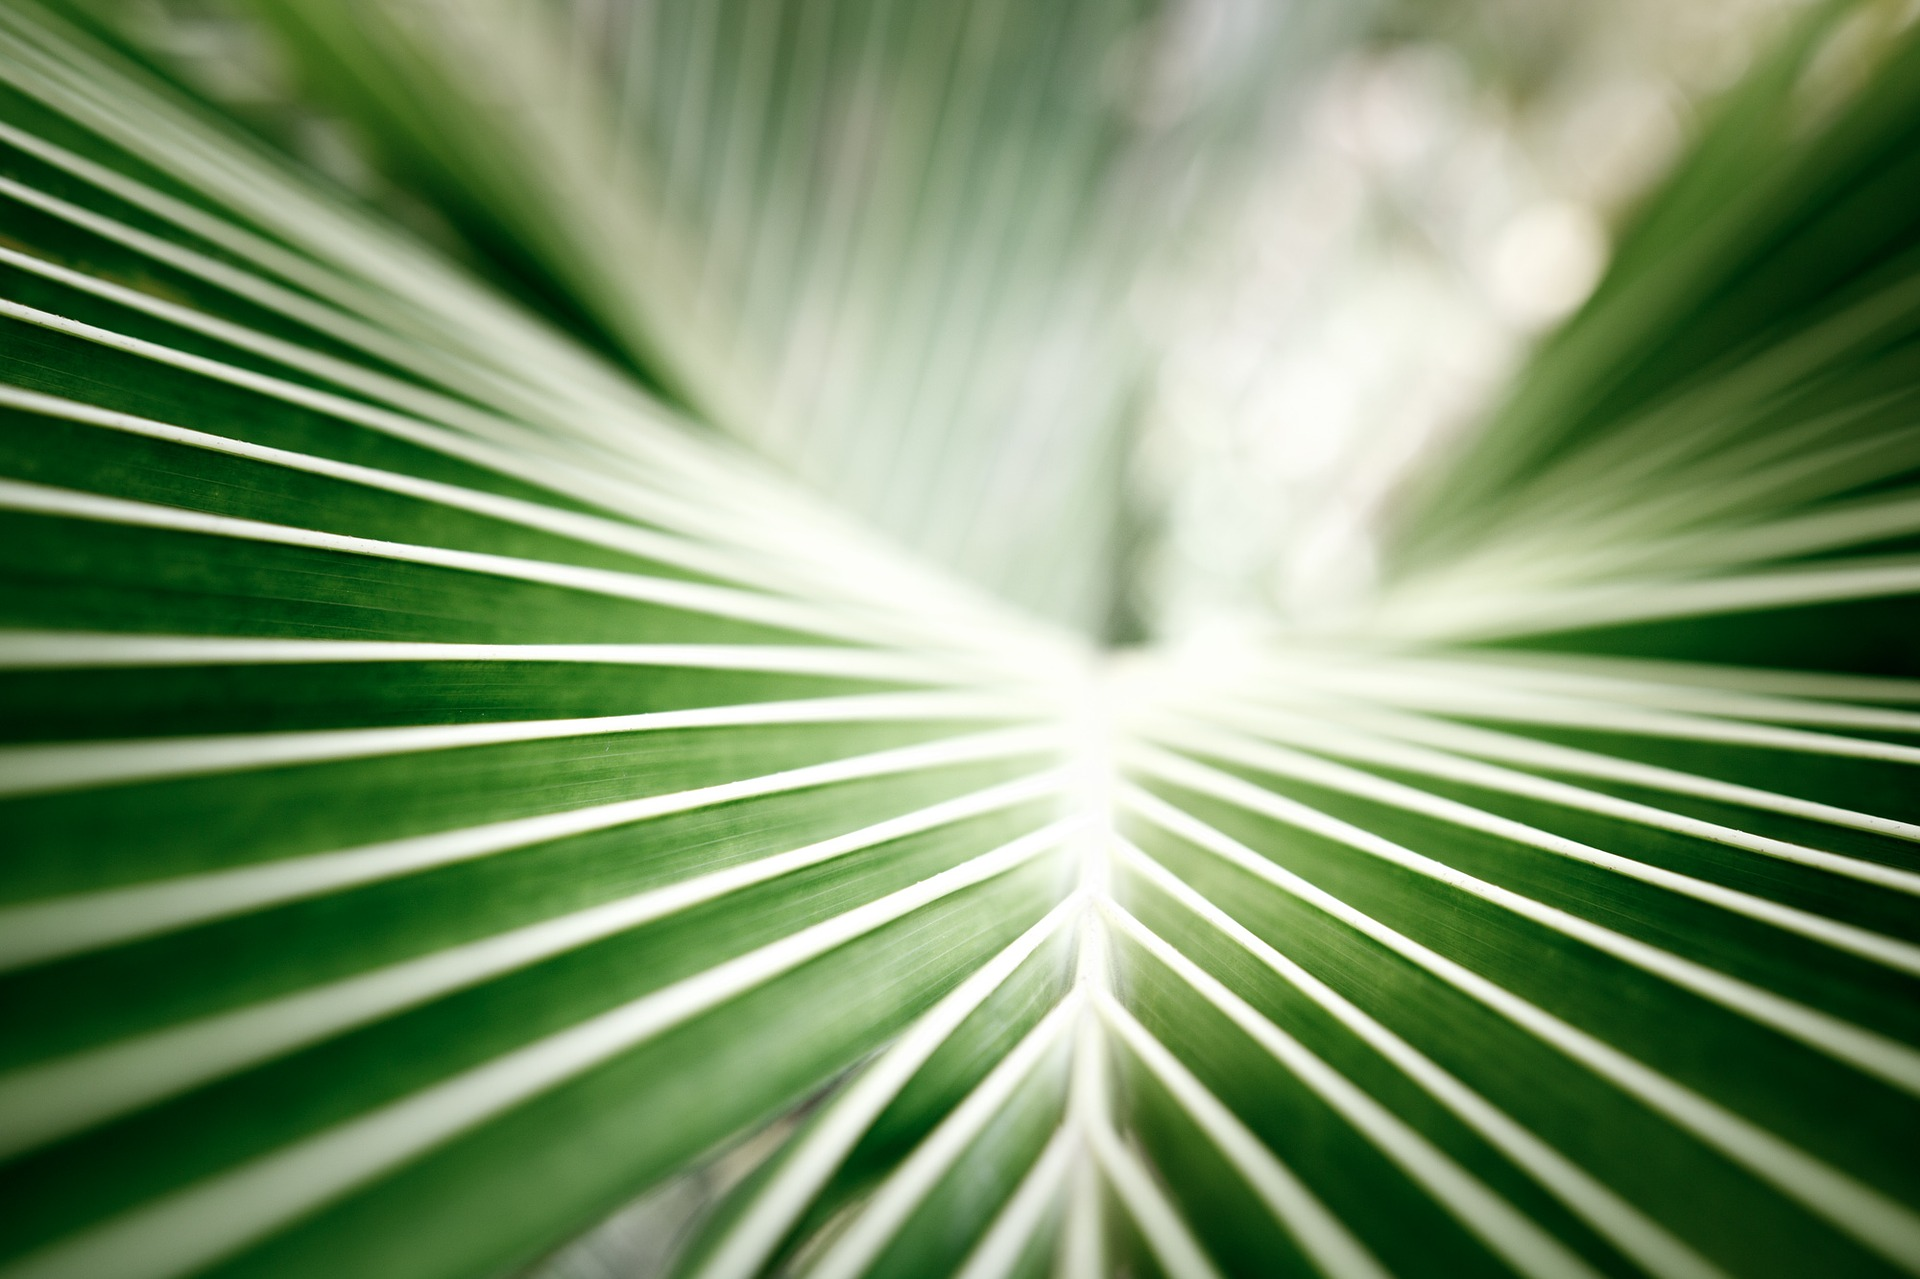 coconut-leaf-2232077_1920.jpg